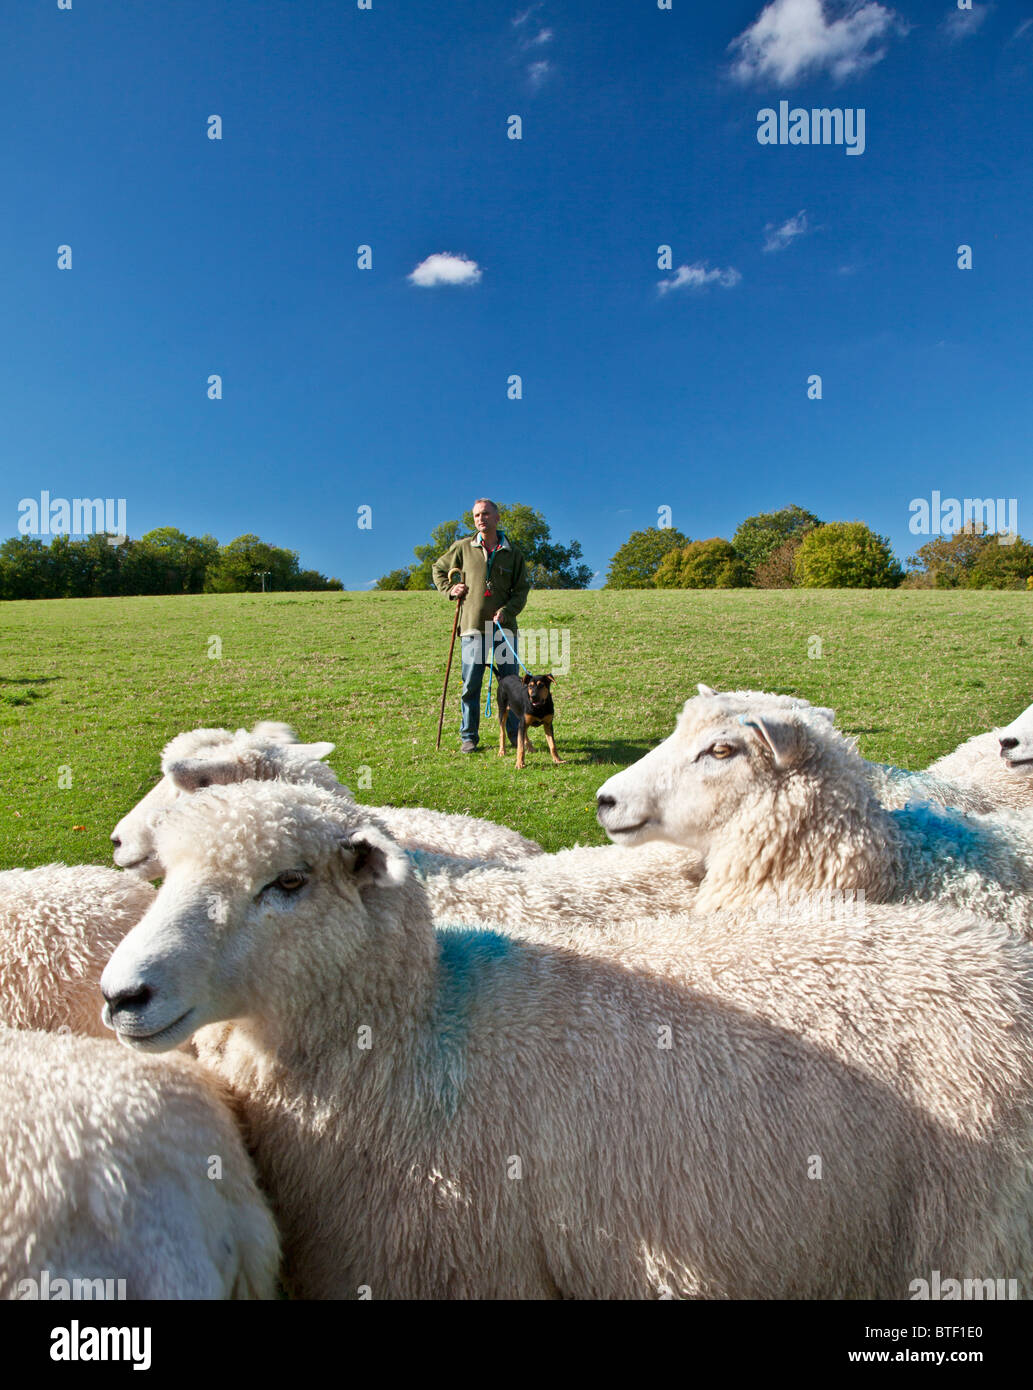 A modern day shepherd with his young New Zealand huntaway sheepdog and a flock of Romney sheep in a field. - Stock Image